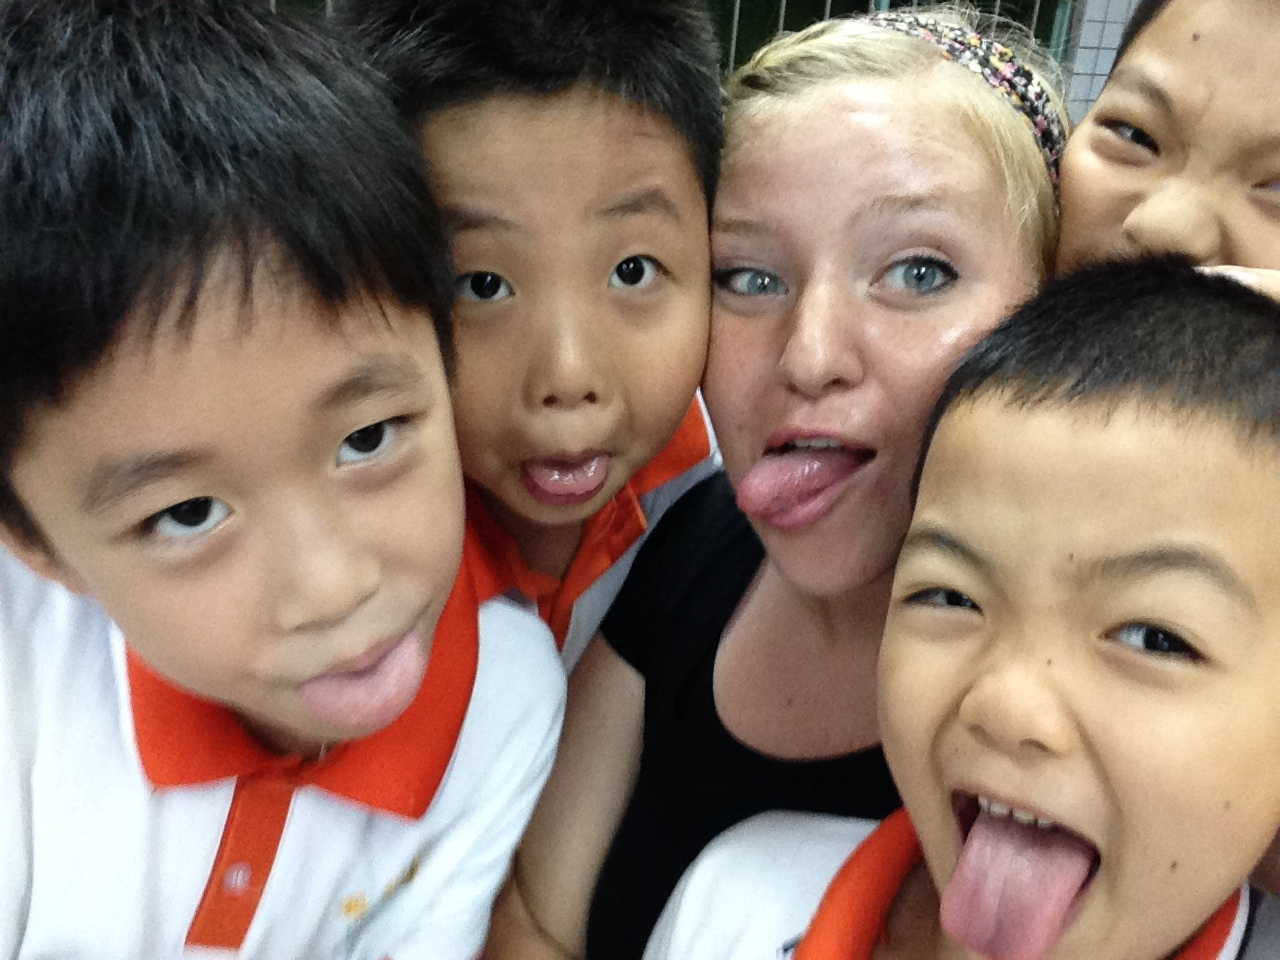 Love and miss these kids so much!